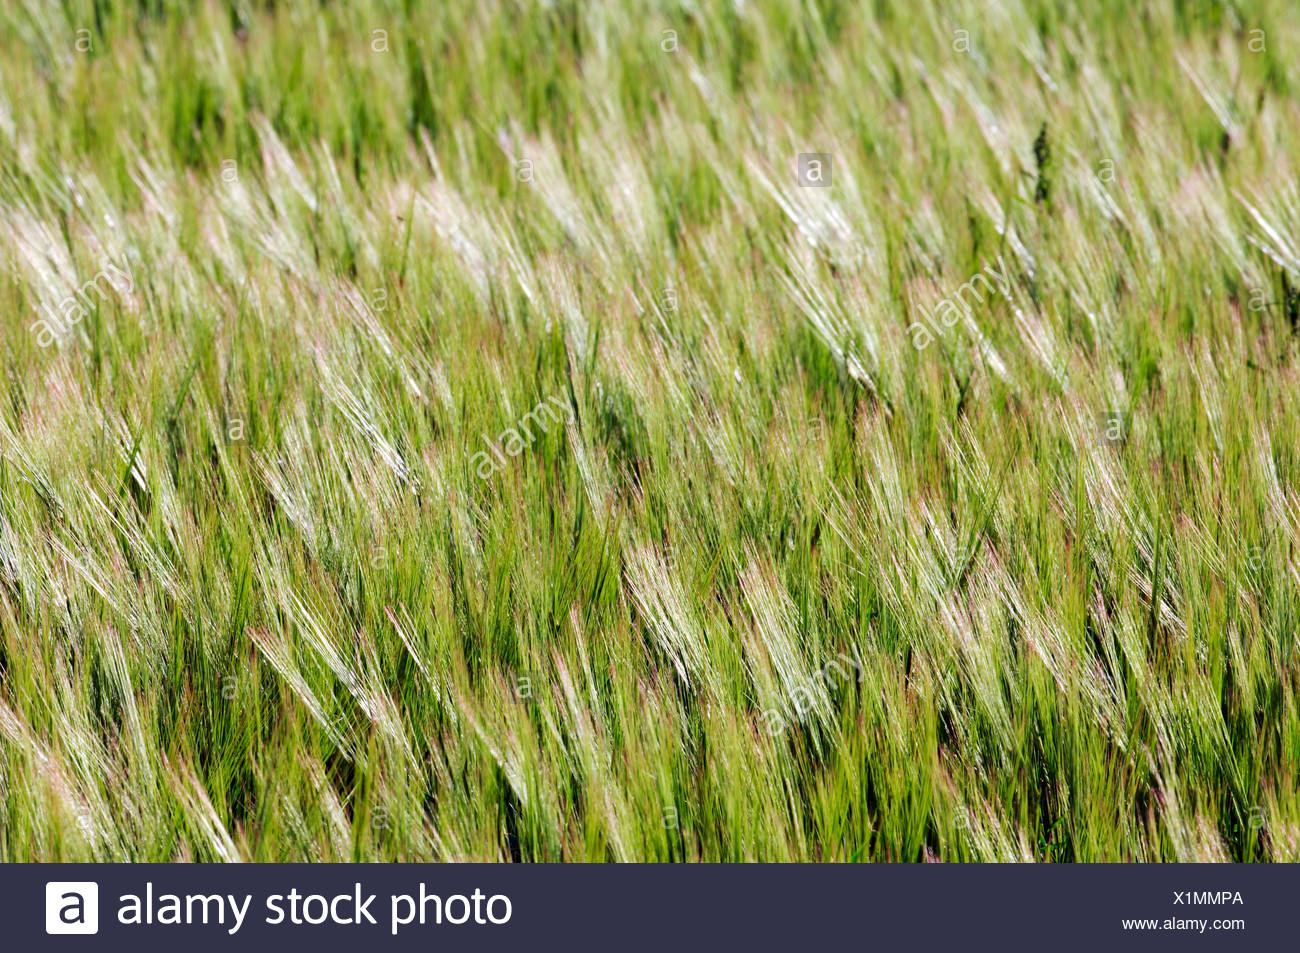 Grain field, ears of corn, ears of grain - Stock Image